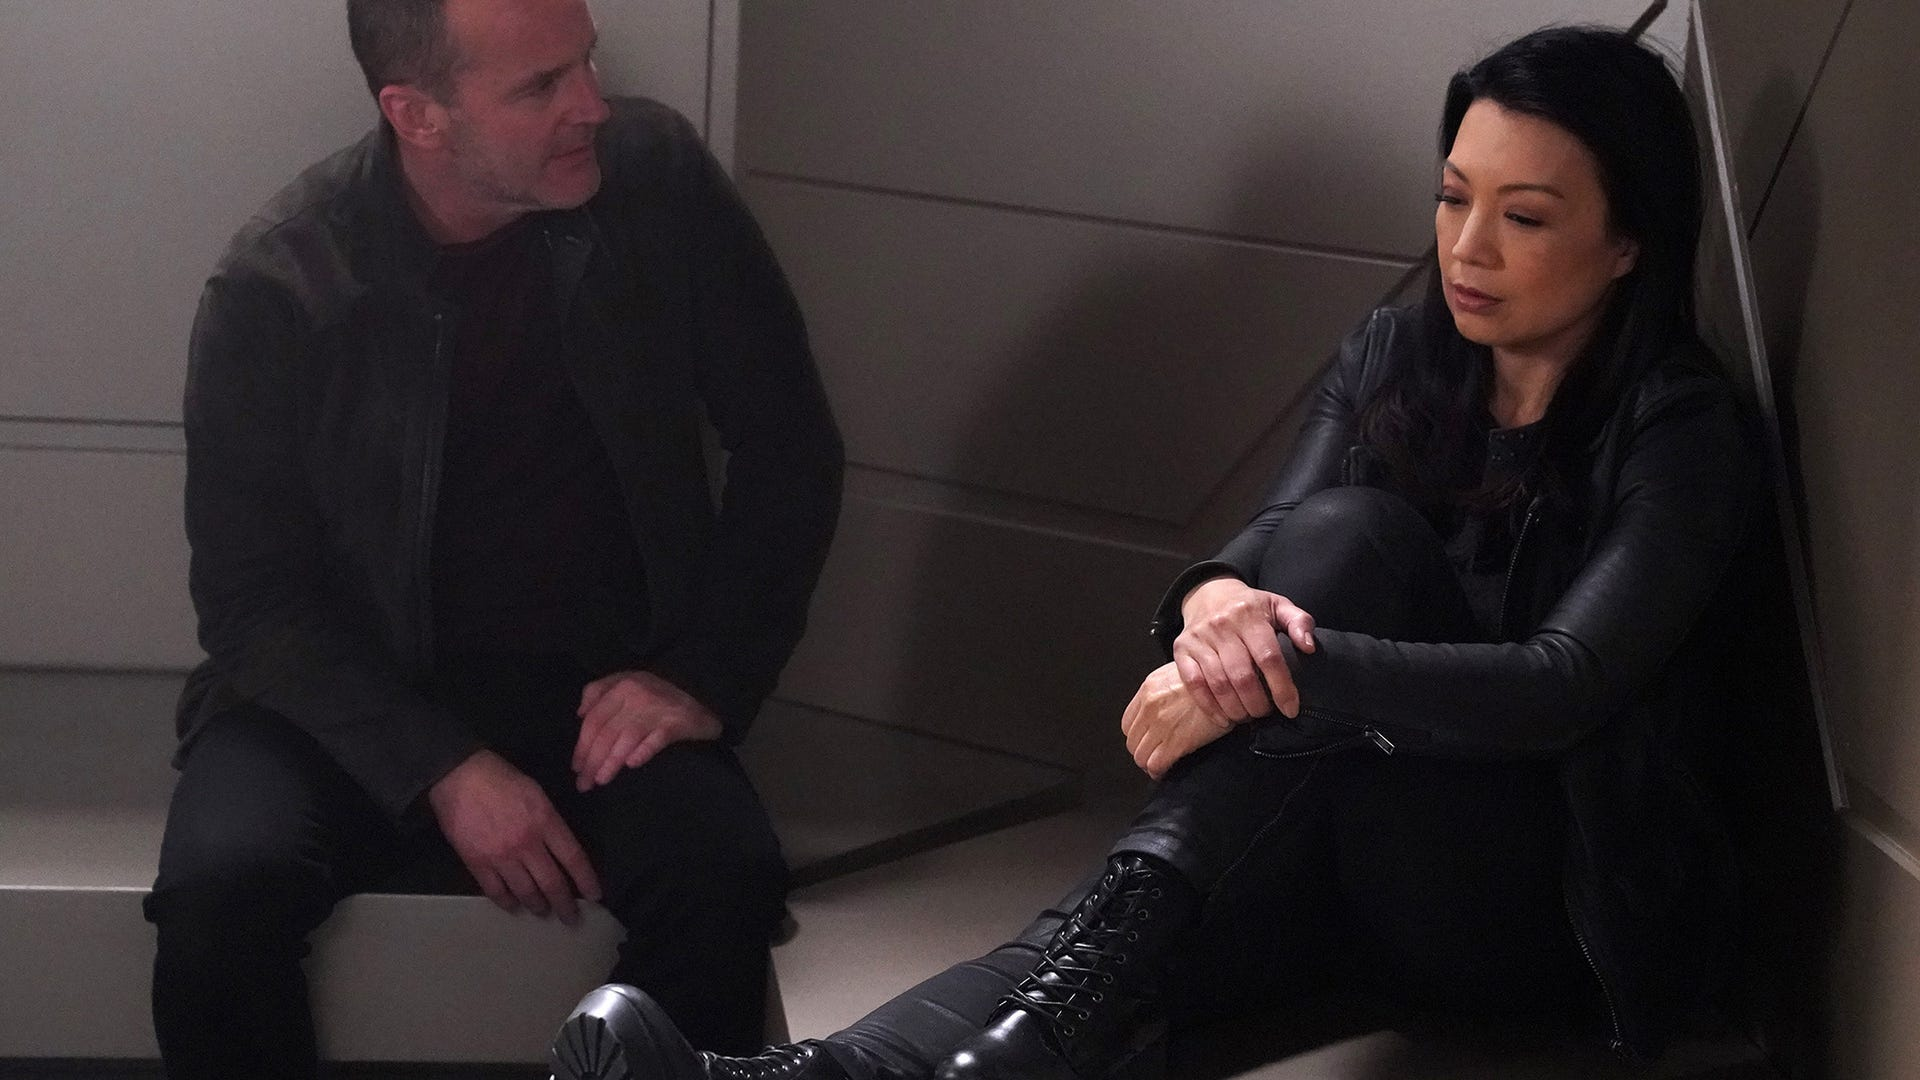 Clark Gregg and Ming Na Wen, Marvel's Agents of S.H.I.E.L.D.